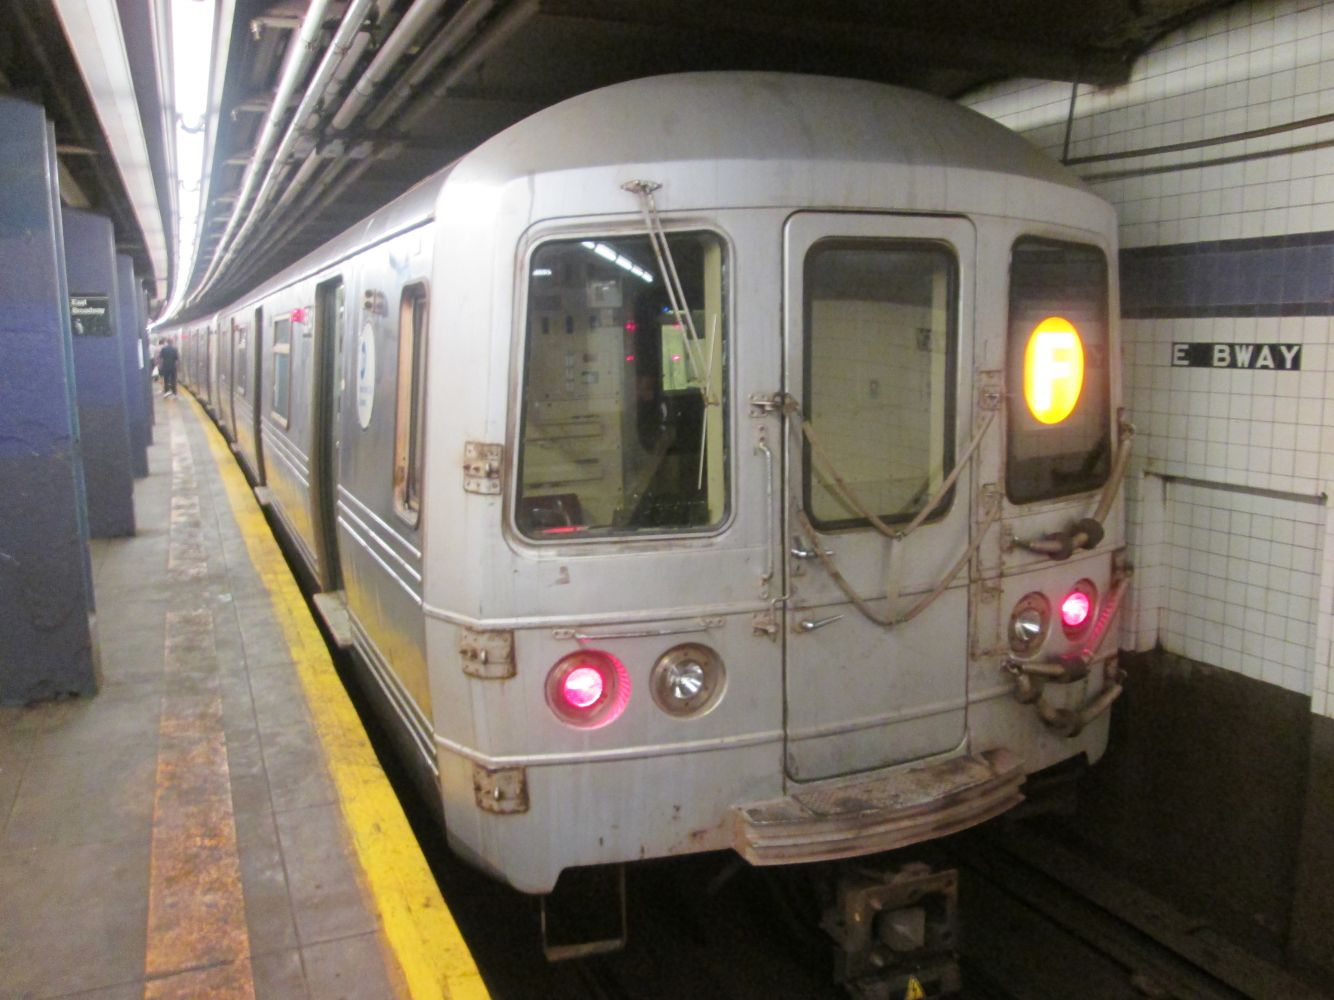 R46 F train at East Broadway